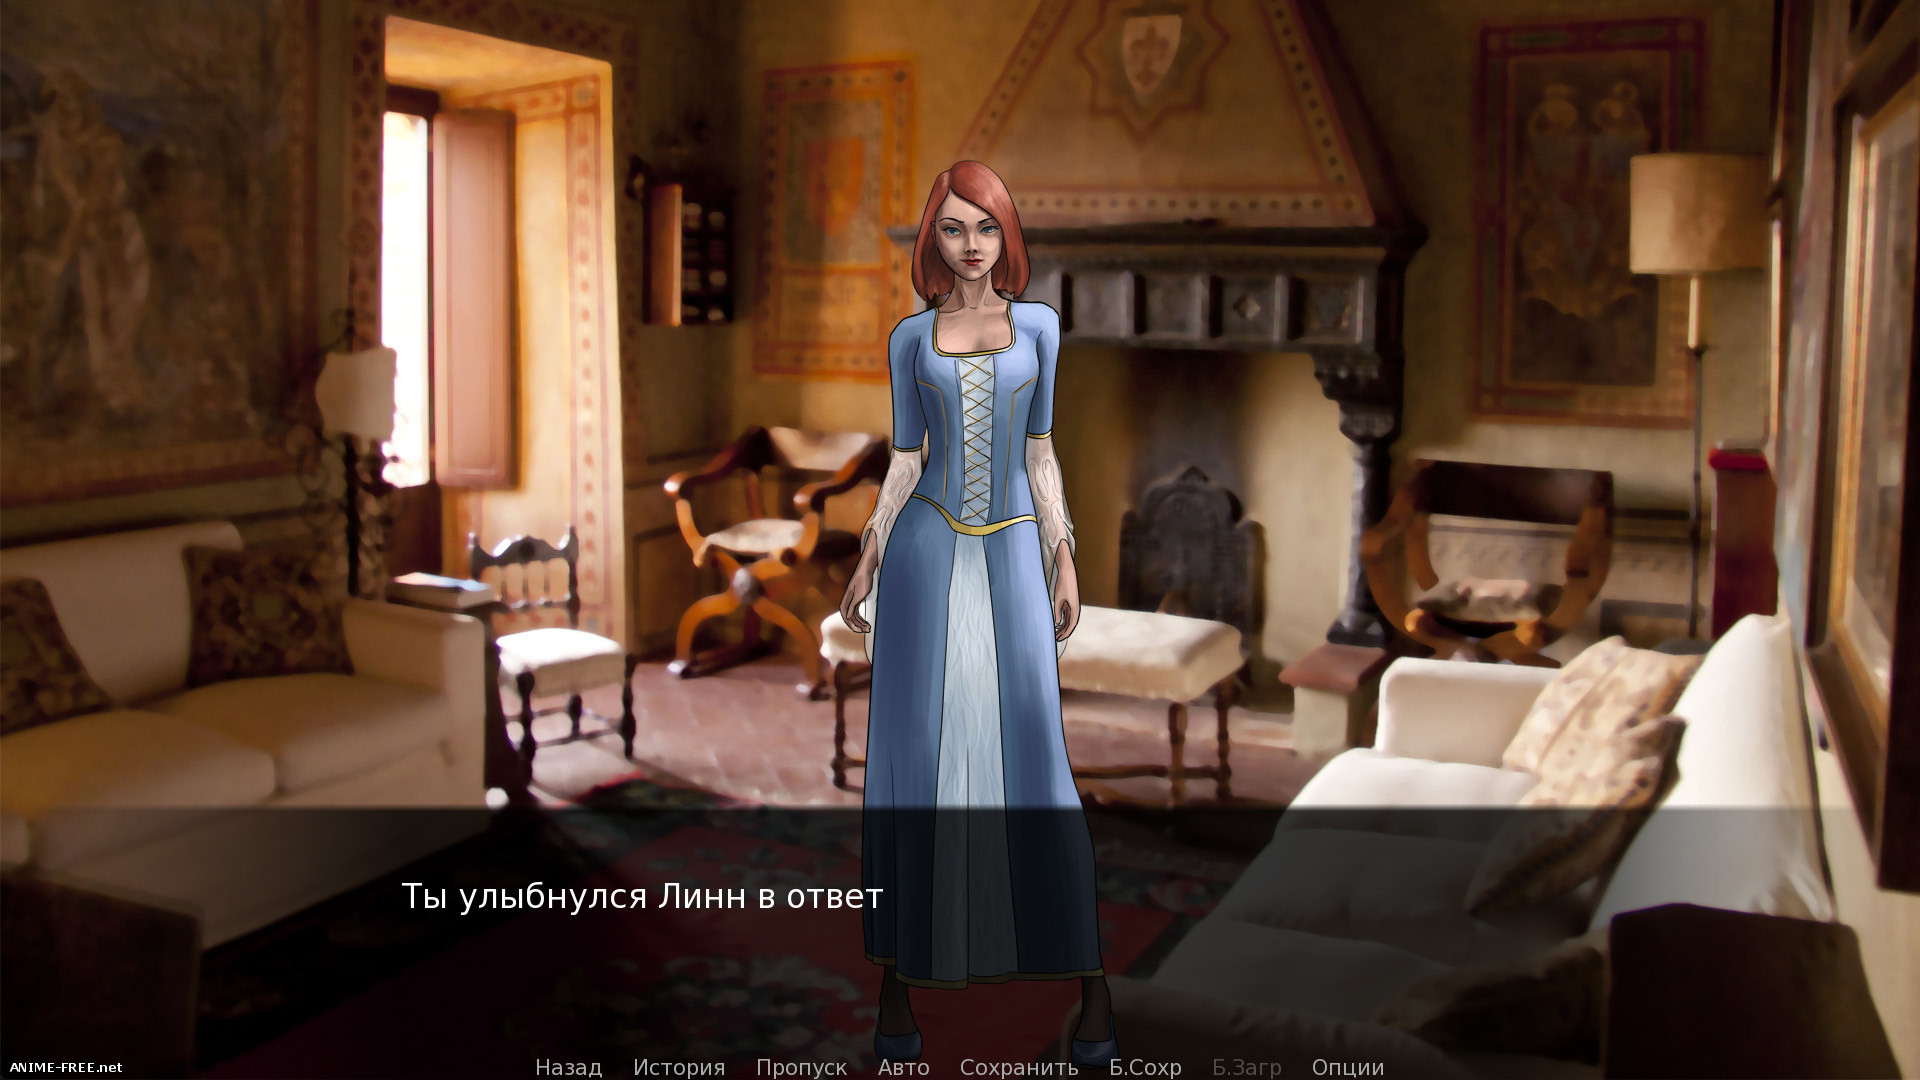 Queen Counselor / Советник королевы [2019] [Uncen] [ADV] [RUS] H-Game